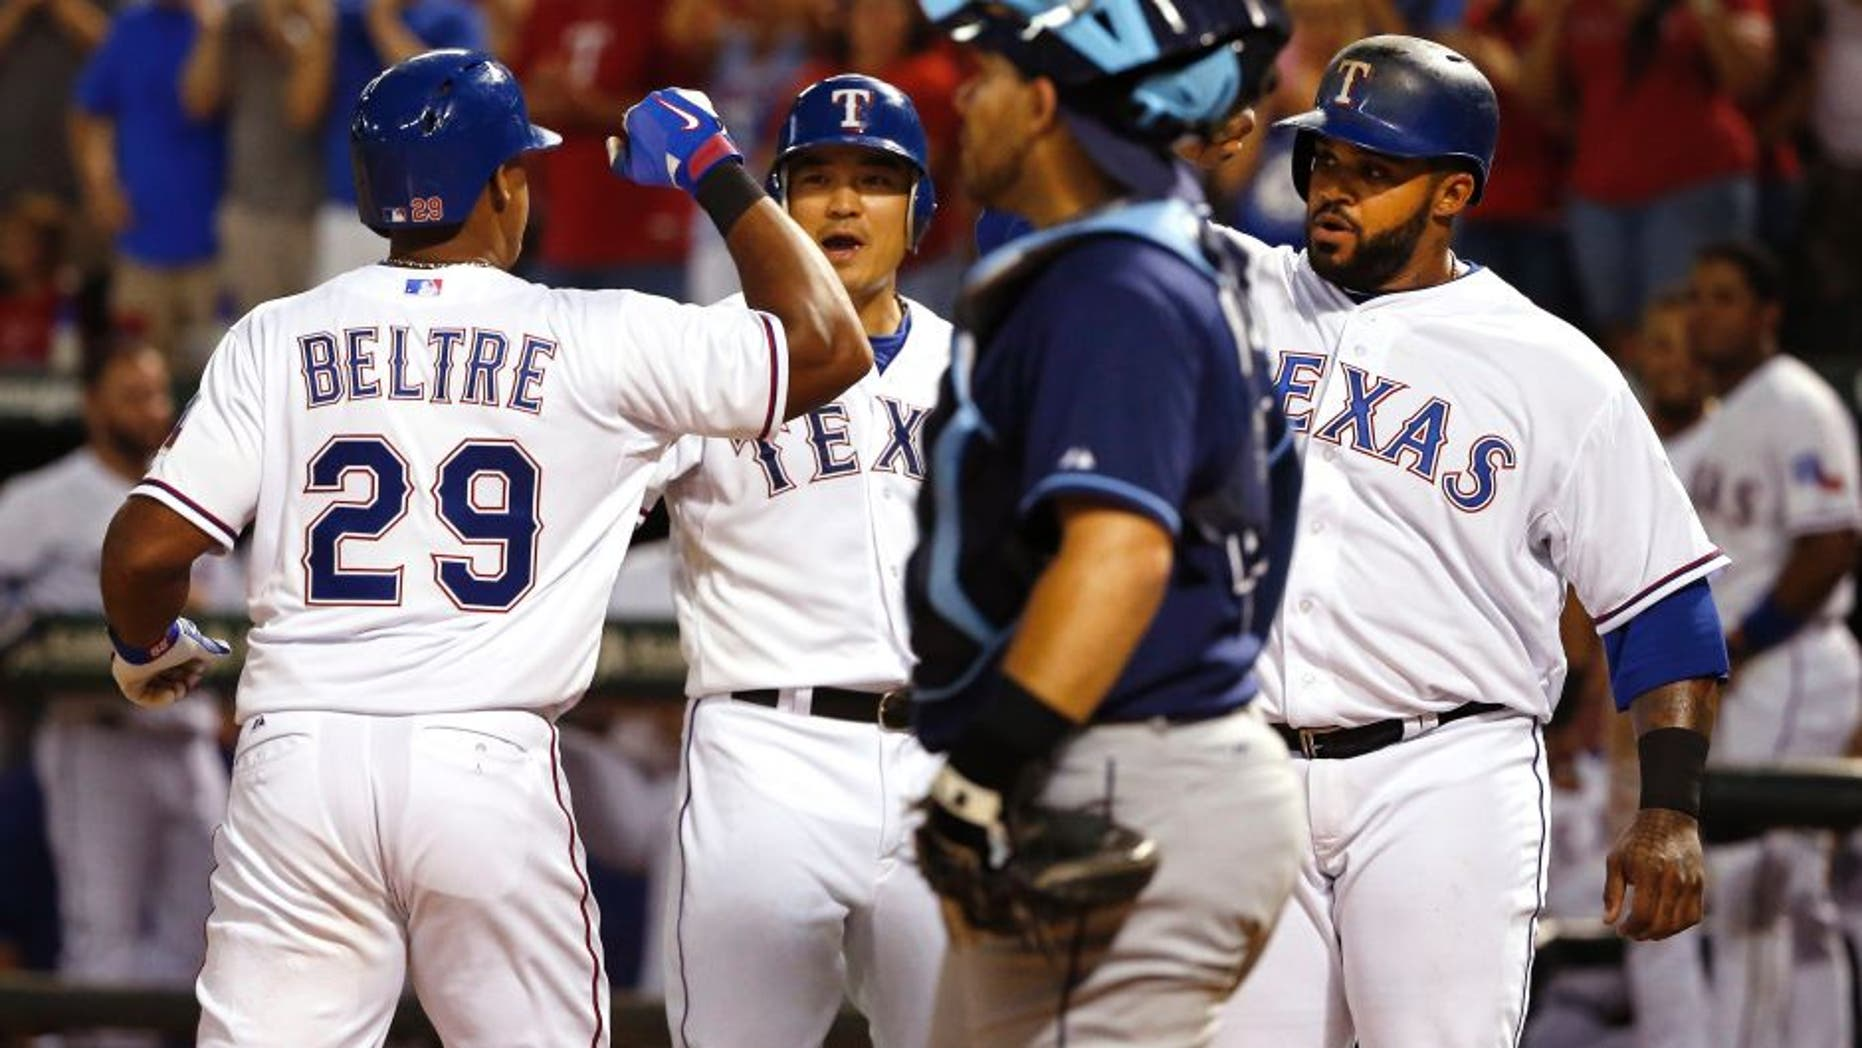 Texas Rangers third baseman Adrian Beltre (29) celebrates with teammates Shin-Soo Choo, center, and Prince Fielder after his three-run home run, while Tampa Bay Rays catcher Rene Rivera stands nearby during the sixth inning of a baseball game Saturday, Aug. 15, 2015, in Arlington, Texas. The Rangers defeated the Rays 12-4. (AP Photo/Ron Jenkins)